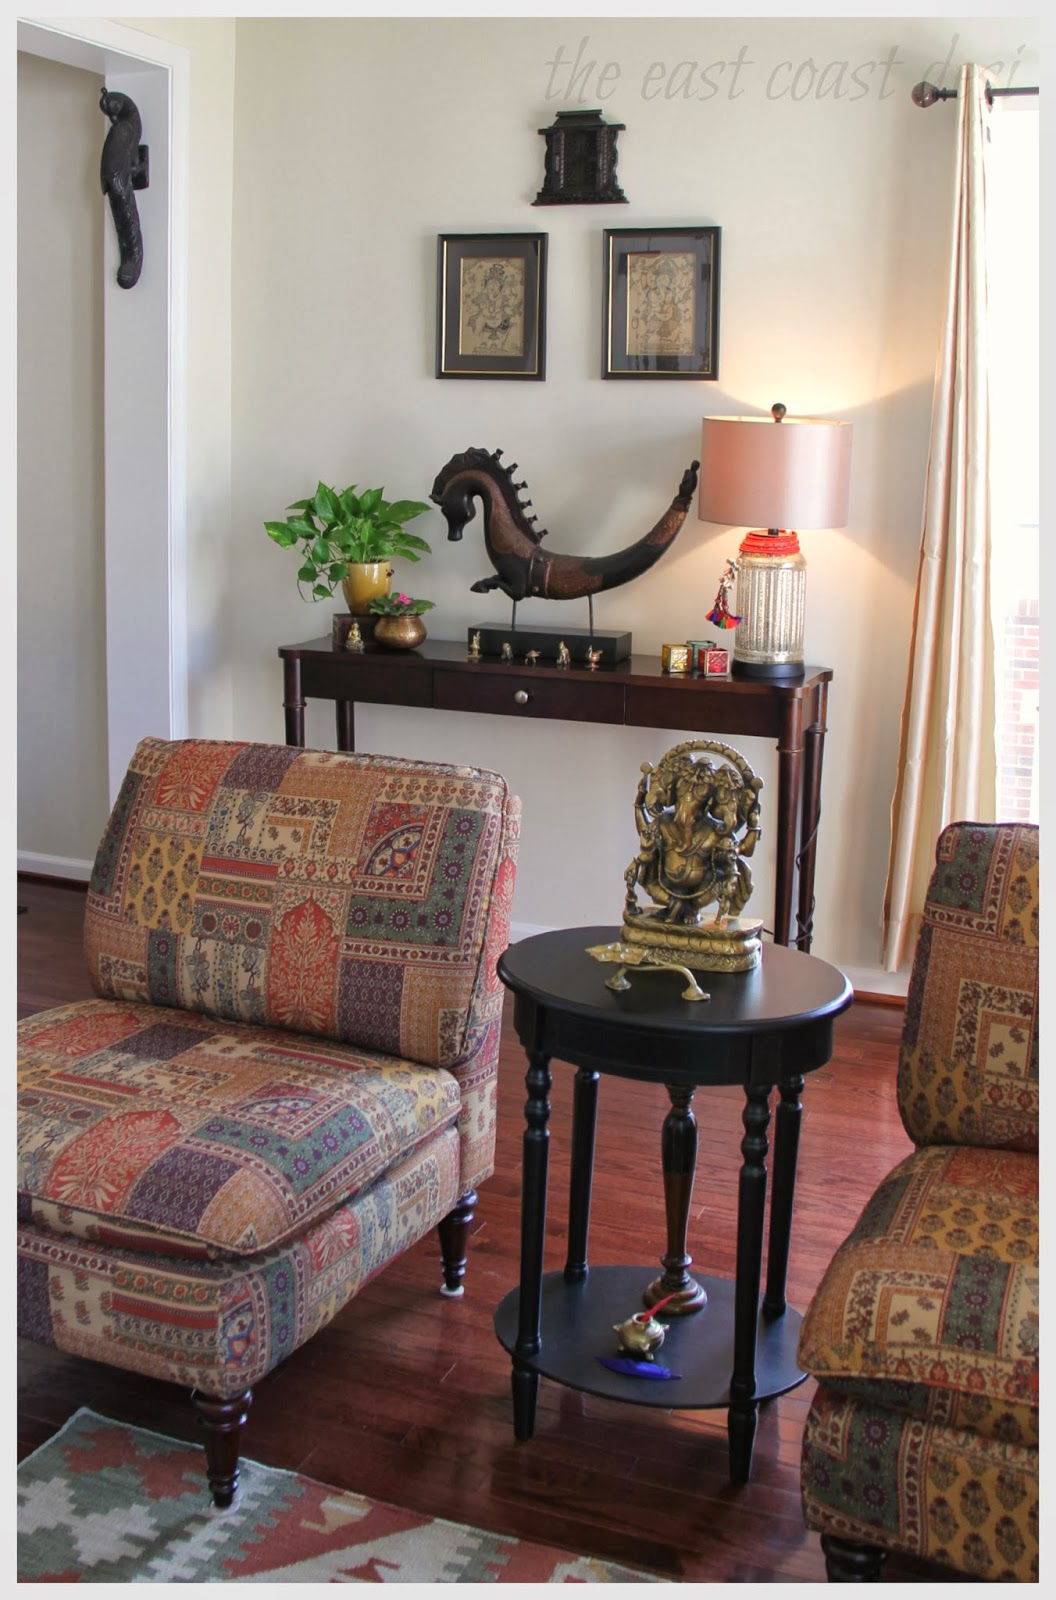 The east coast desi my living room a reflection of india Home interior design indian style